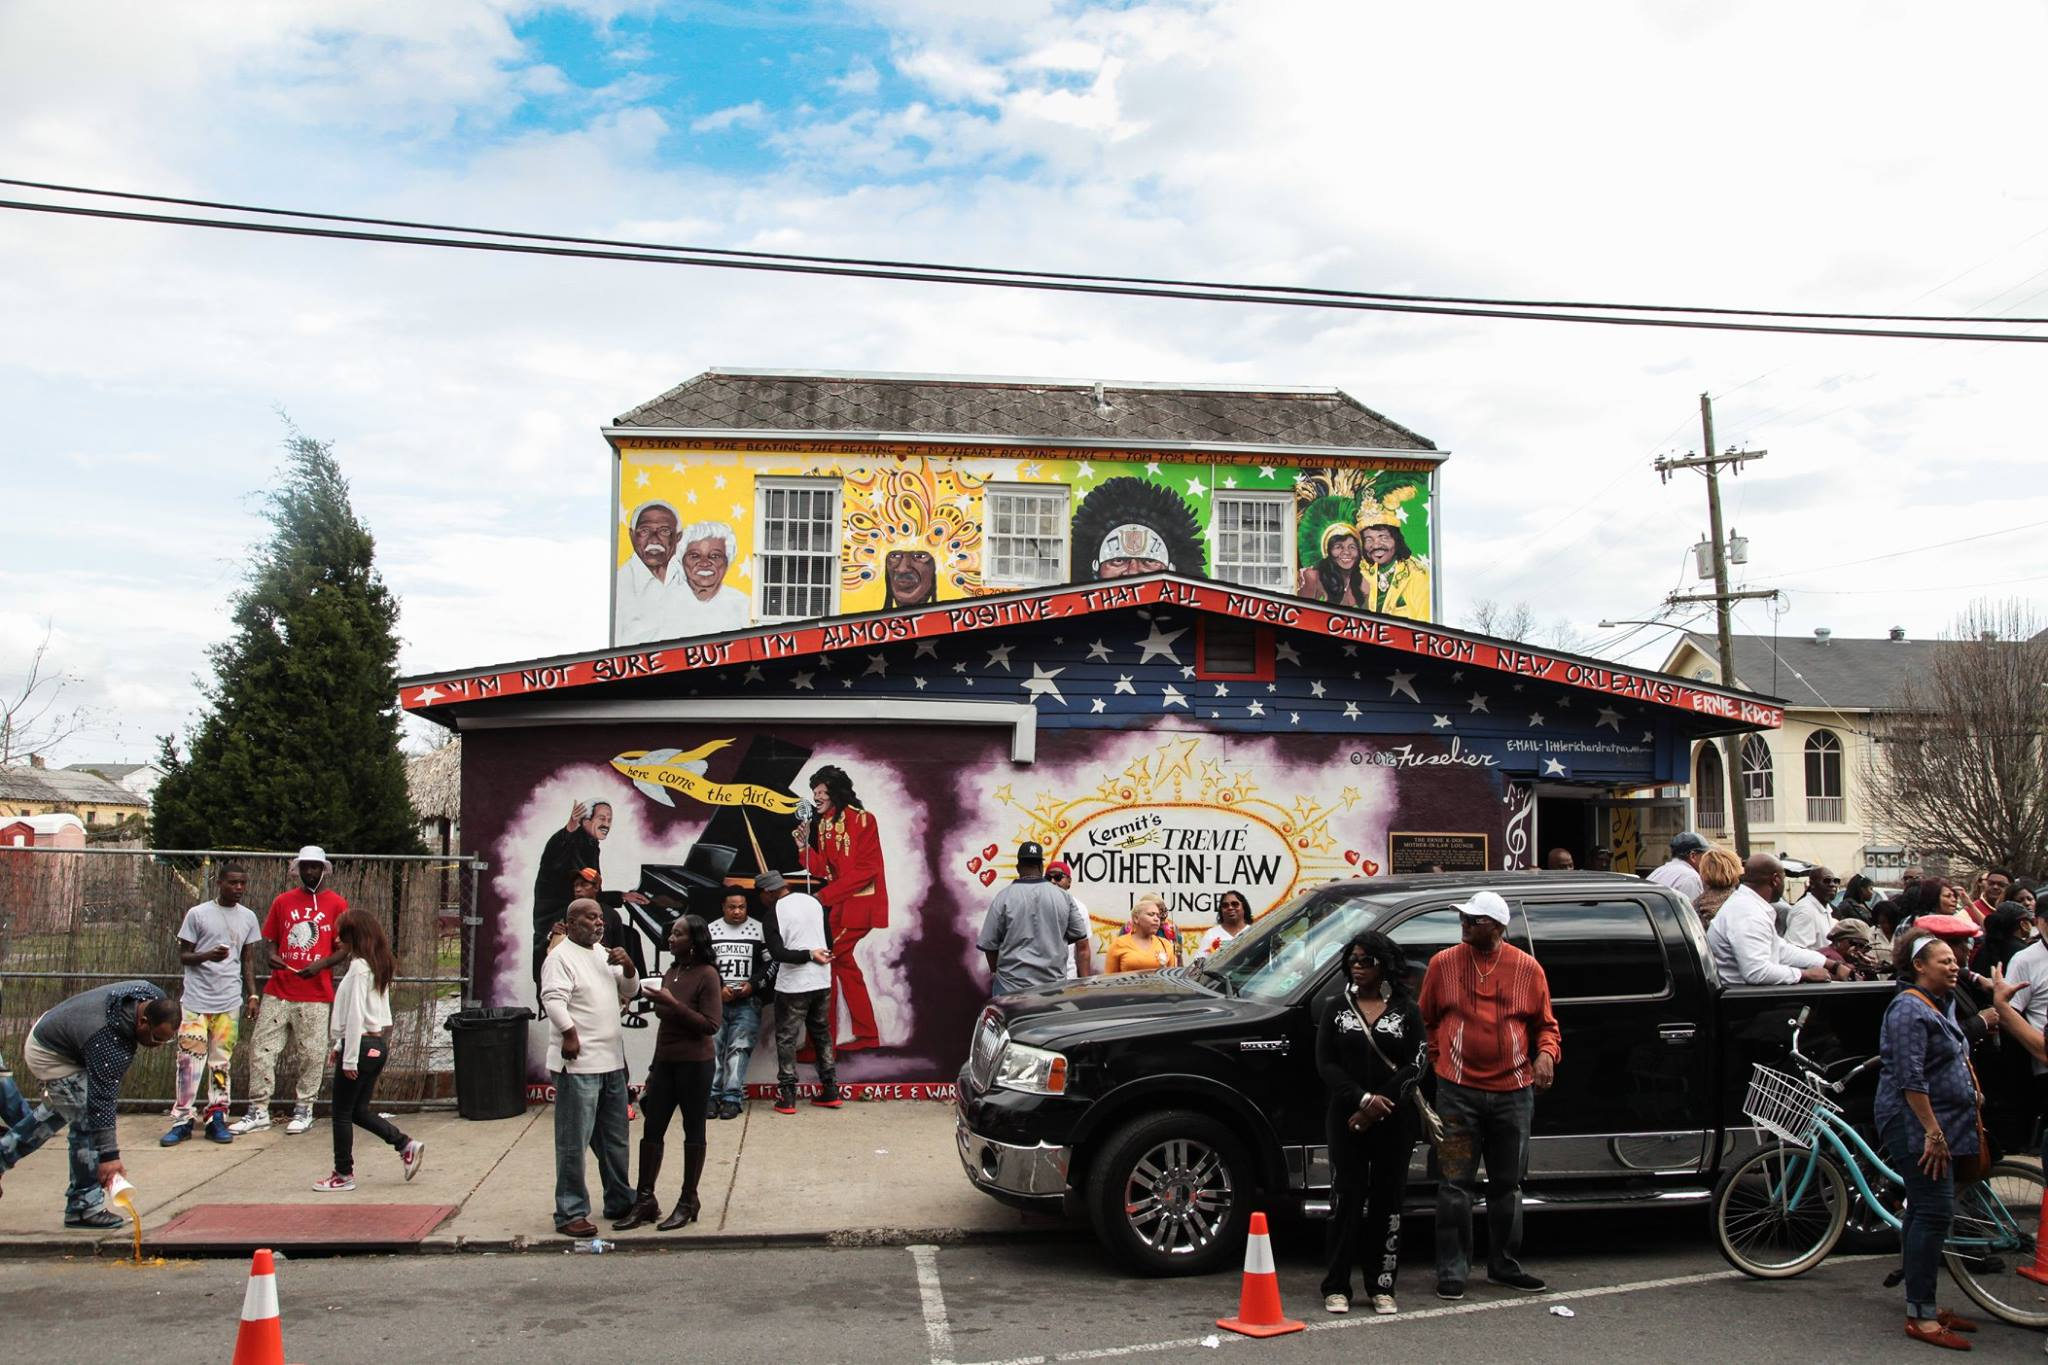 Outside  Kermit's Treme Mother-In-Law Lounge